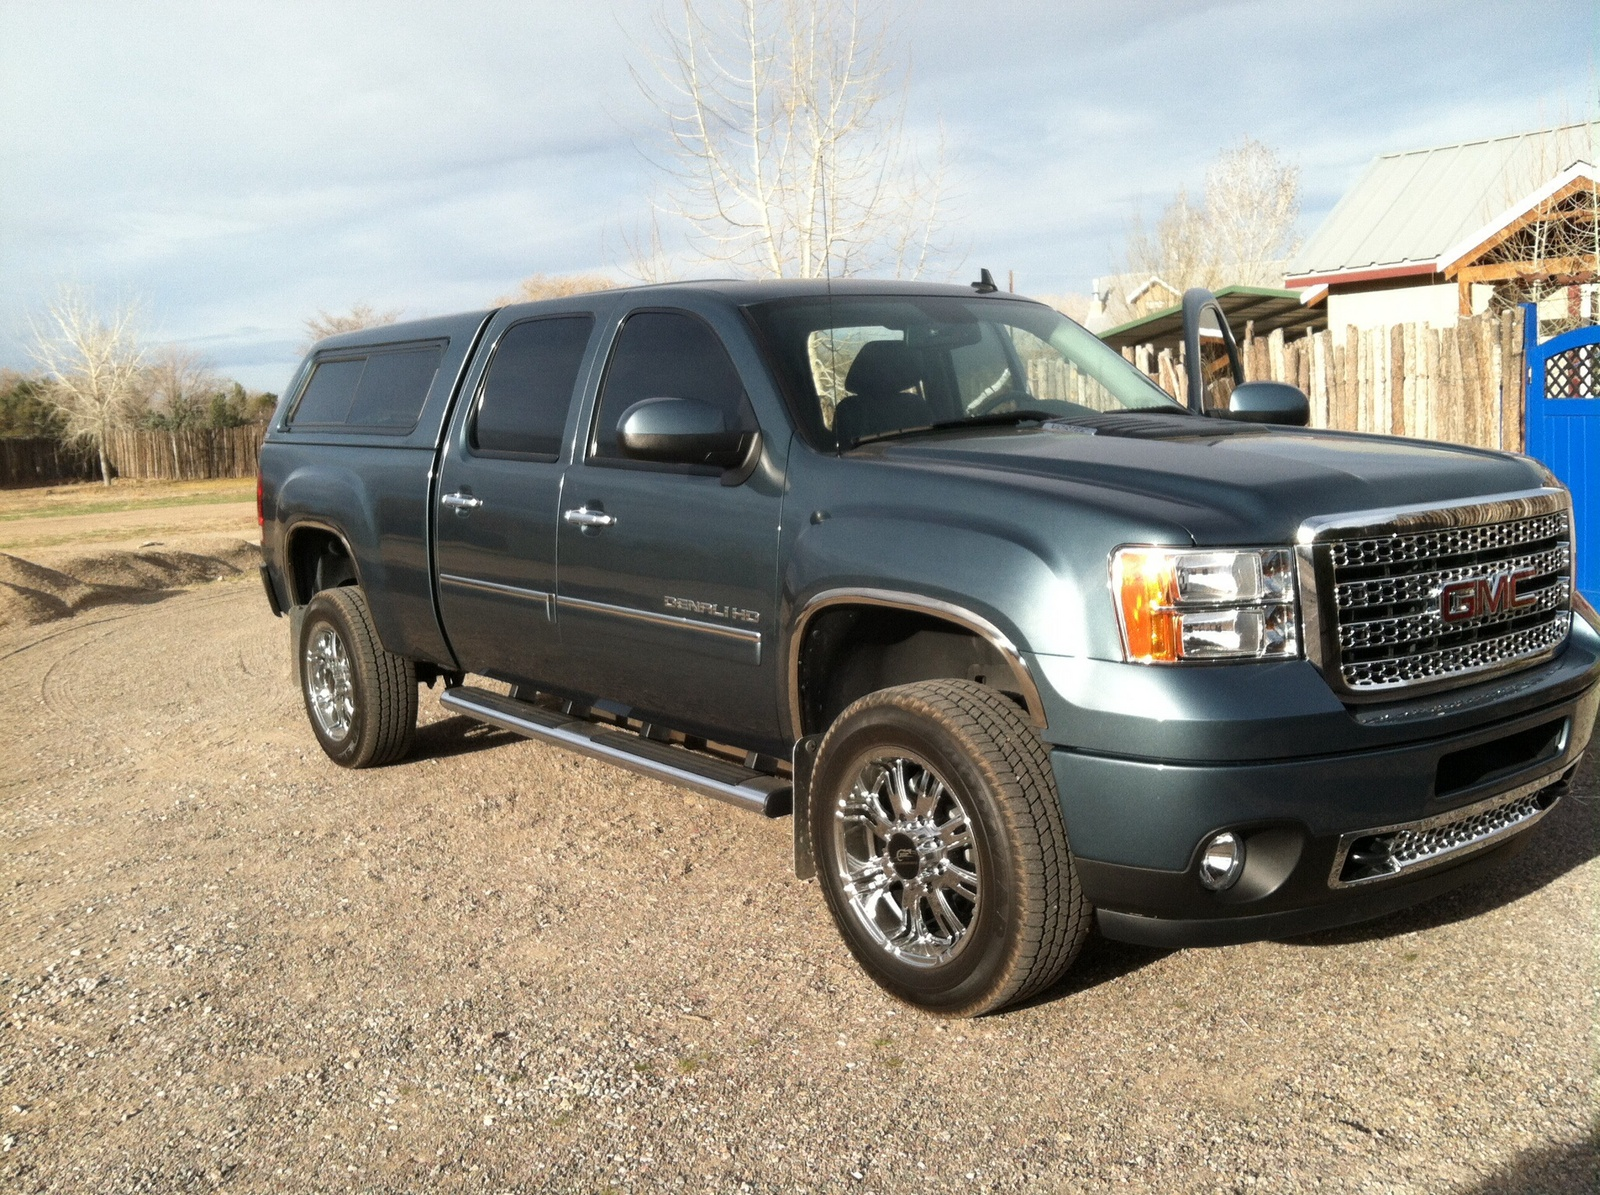 2012 gmc sierra 2500hd pictures cargurus. Black Bedroom Furniture Sets. Home Design Ideas